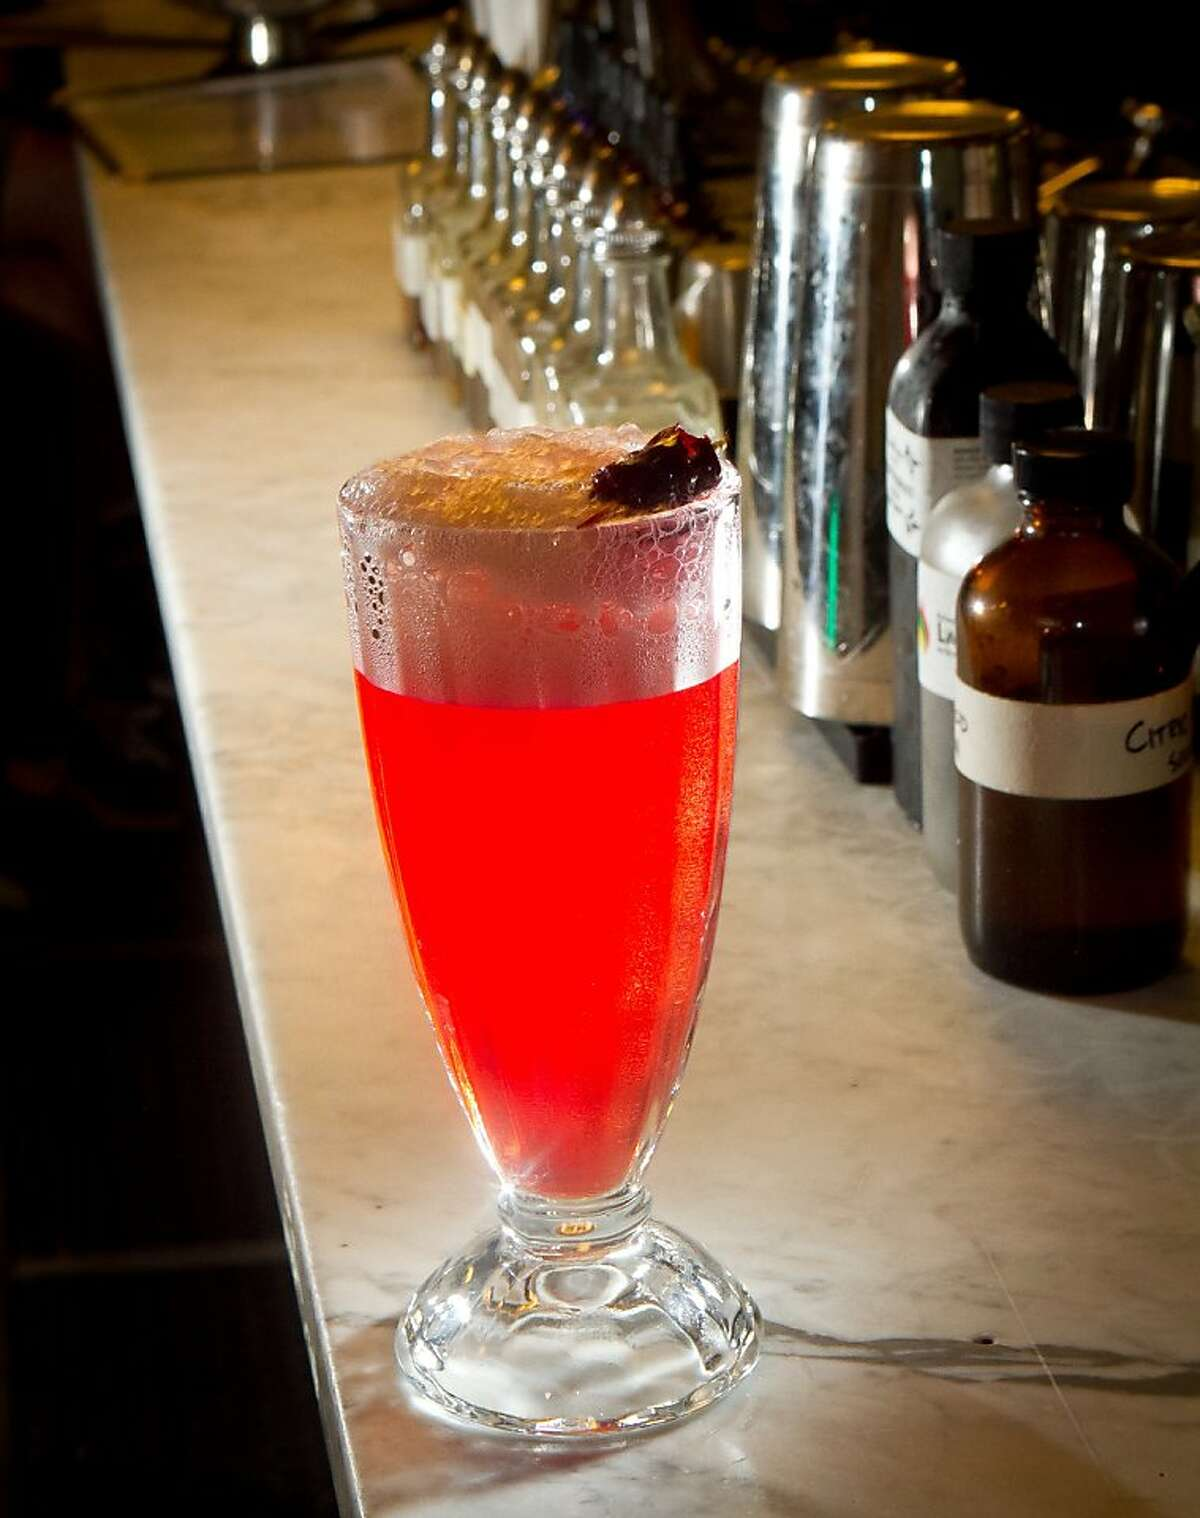 The Wild Cherry Phosphate at the Ice Cream Bar in San Francisco.